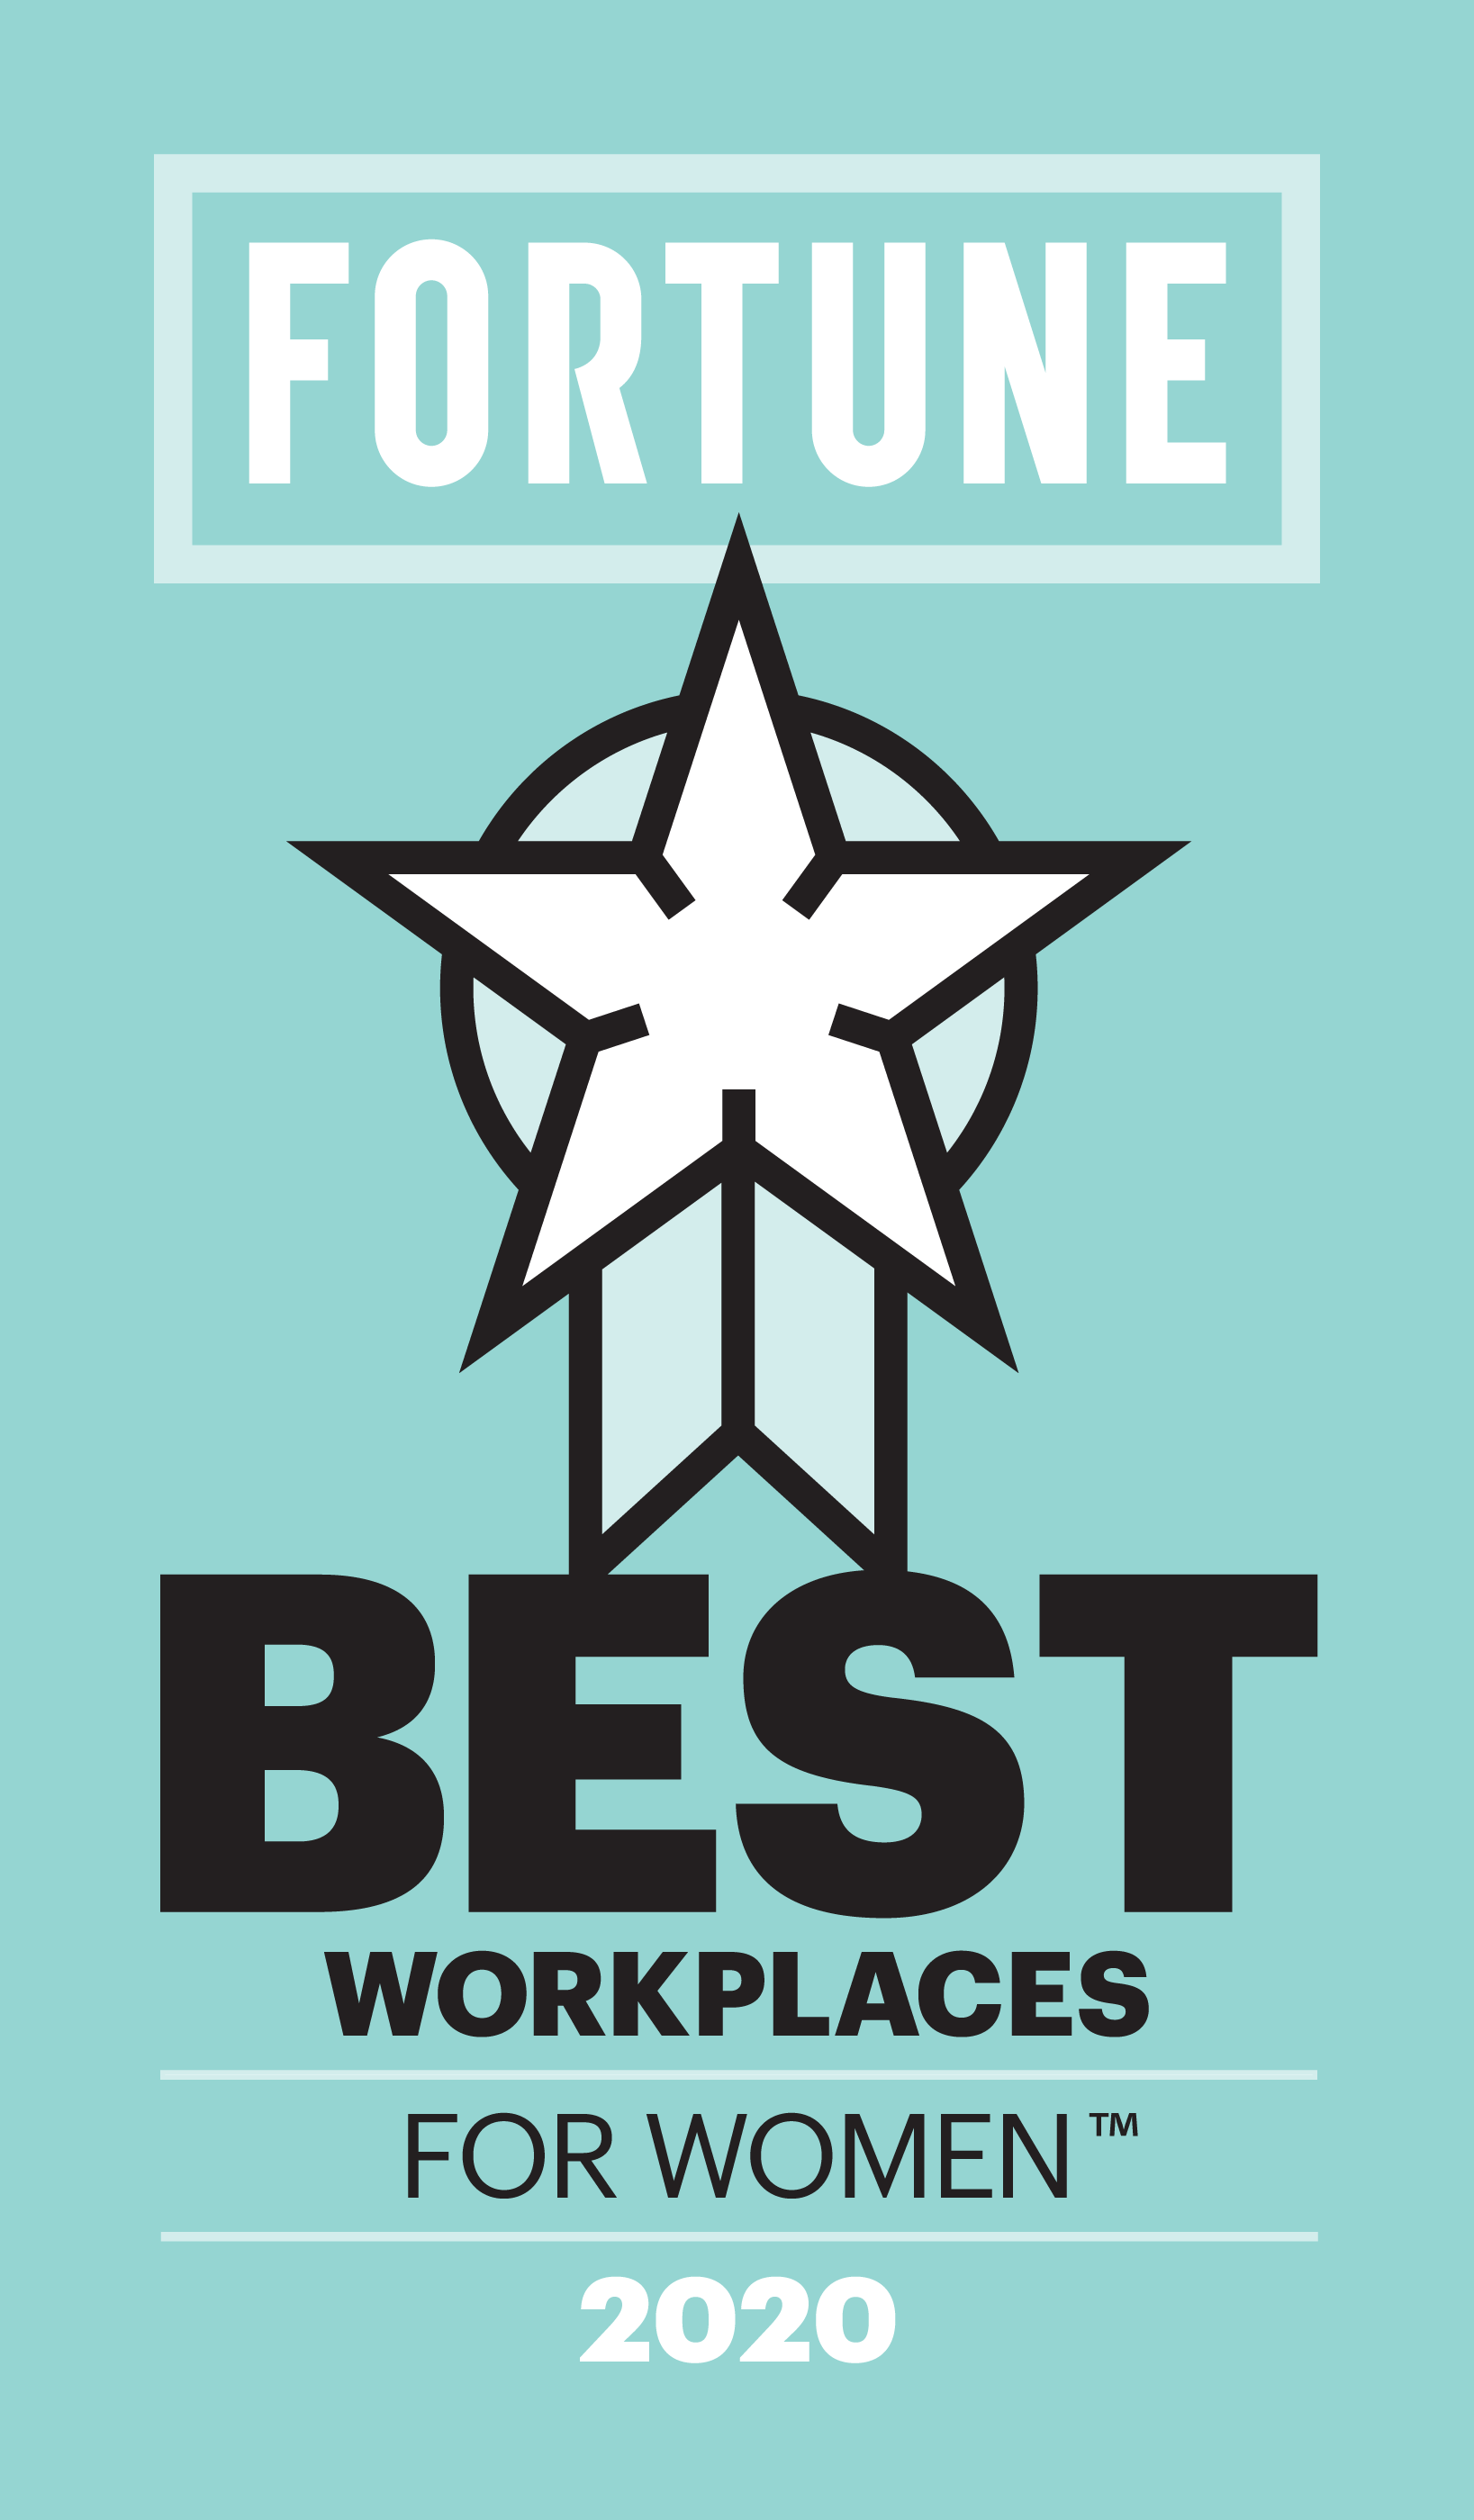 FORTUNE - Best Workplaces for Women 2020 Logo